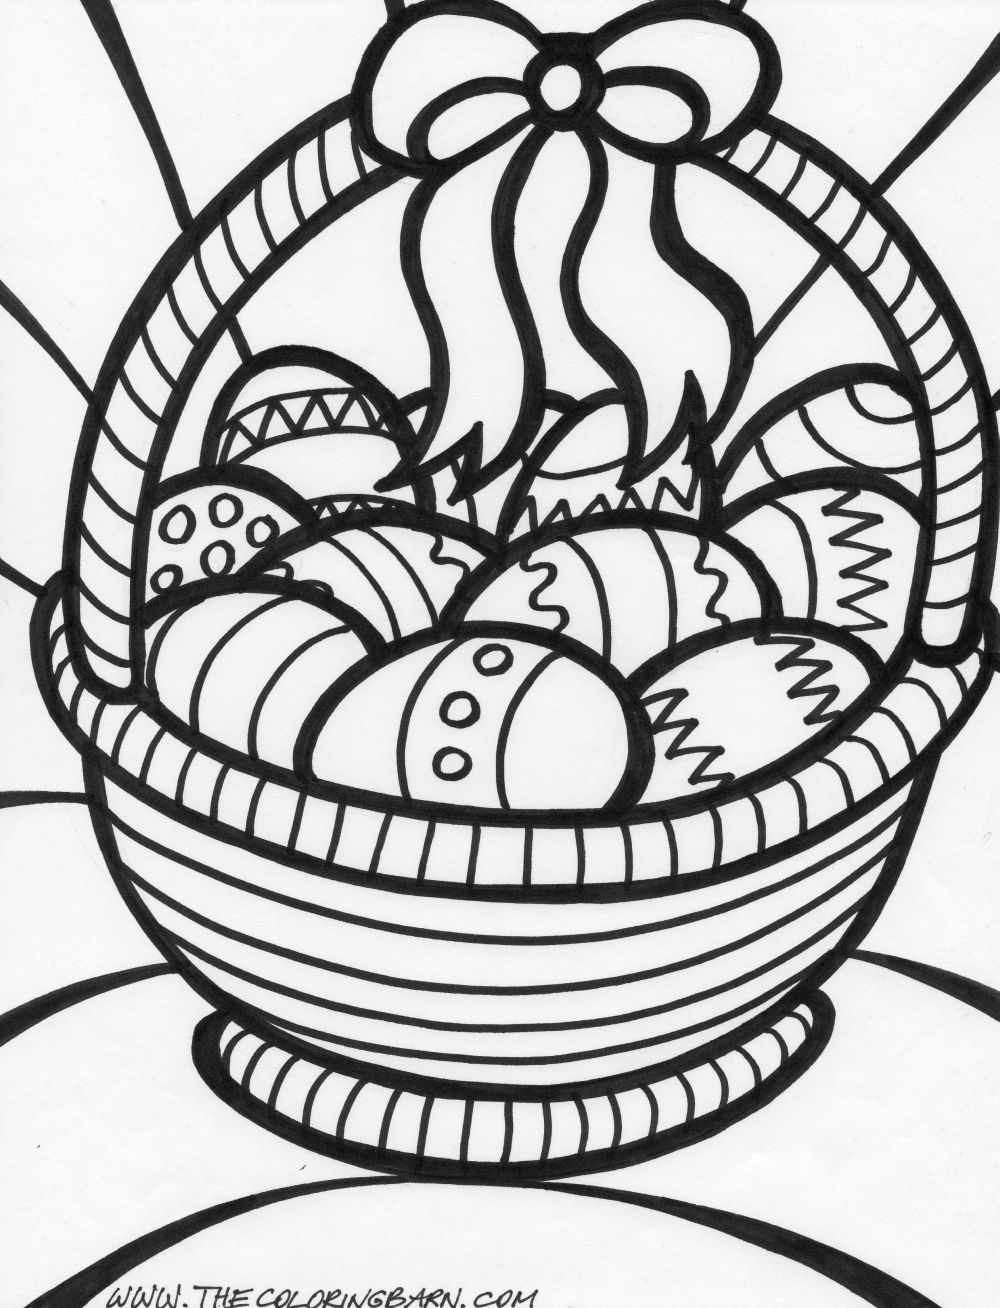 Easter Coloring Pages Easter Coloring Pages Easter Coloring Book Easter Coloring Pages Printable Owl Coloring Pages